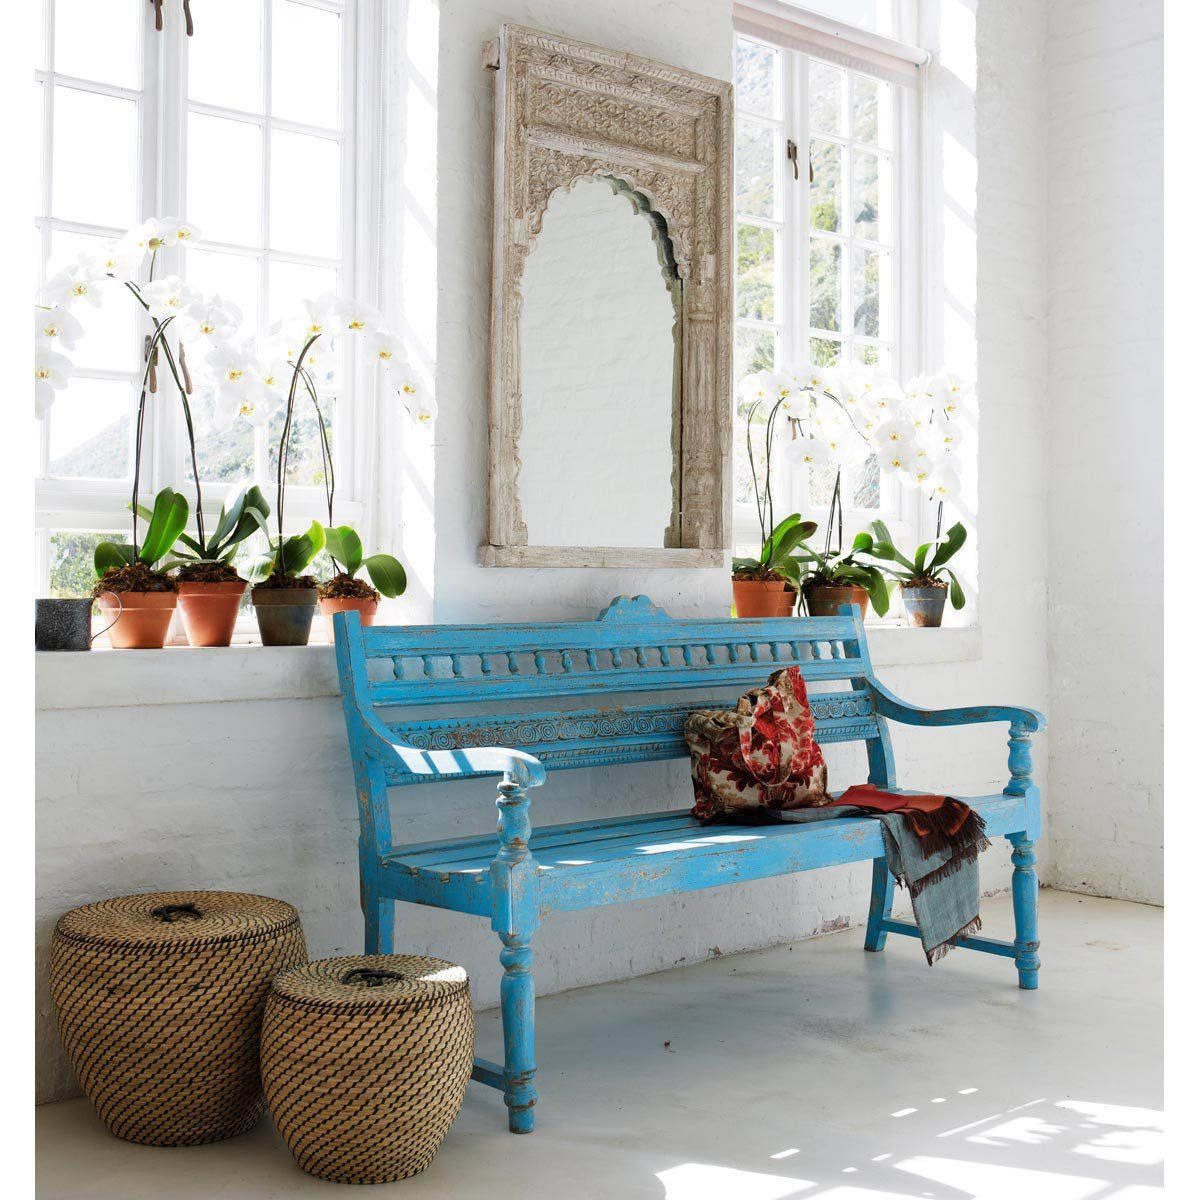 Bengalore bench. This charming mango wood bench comes in a turquoise blue that has been given an antiqued, patina finish.